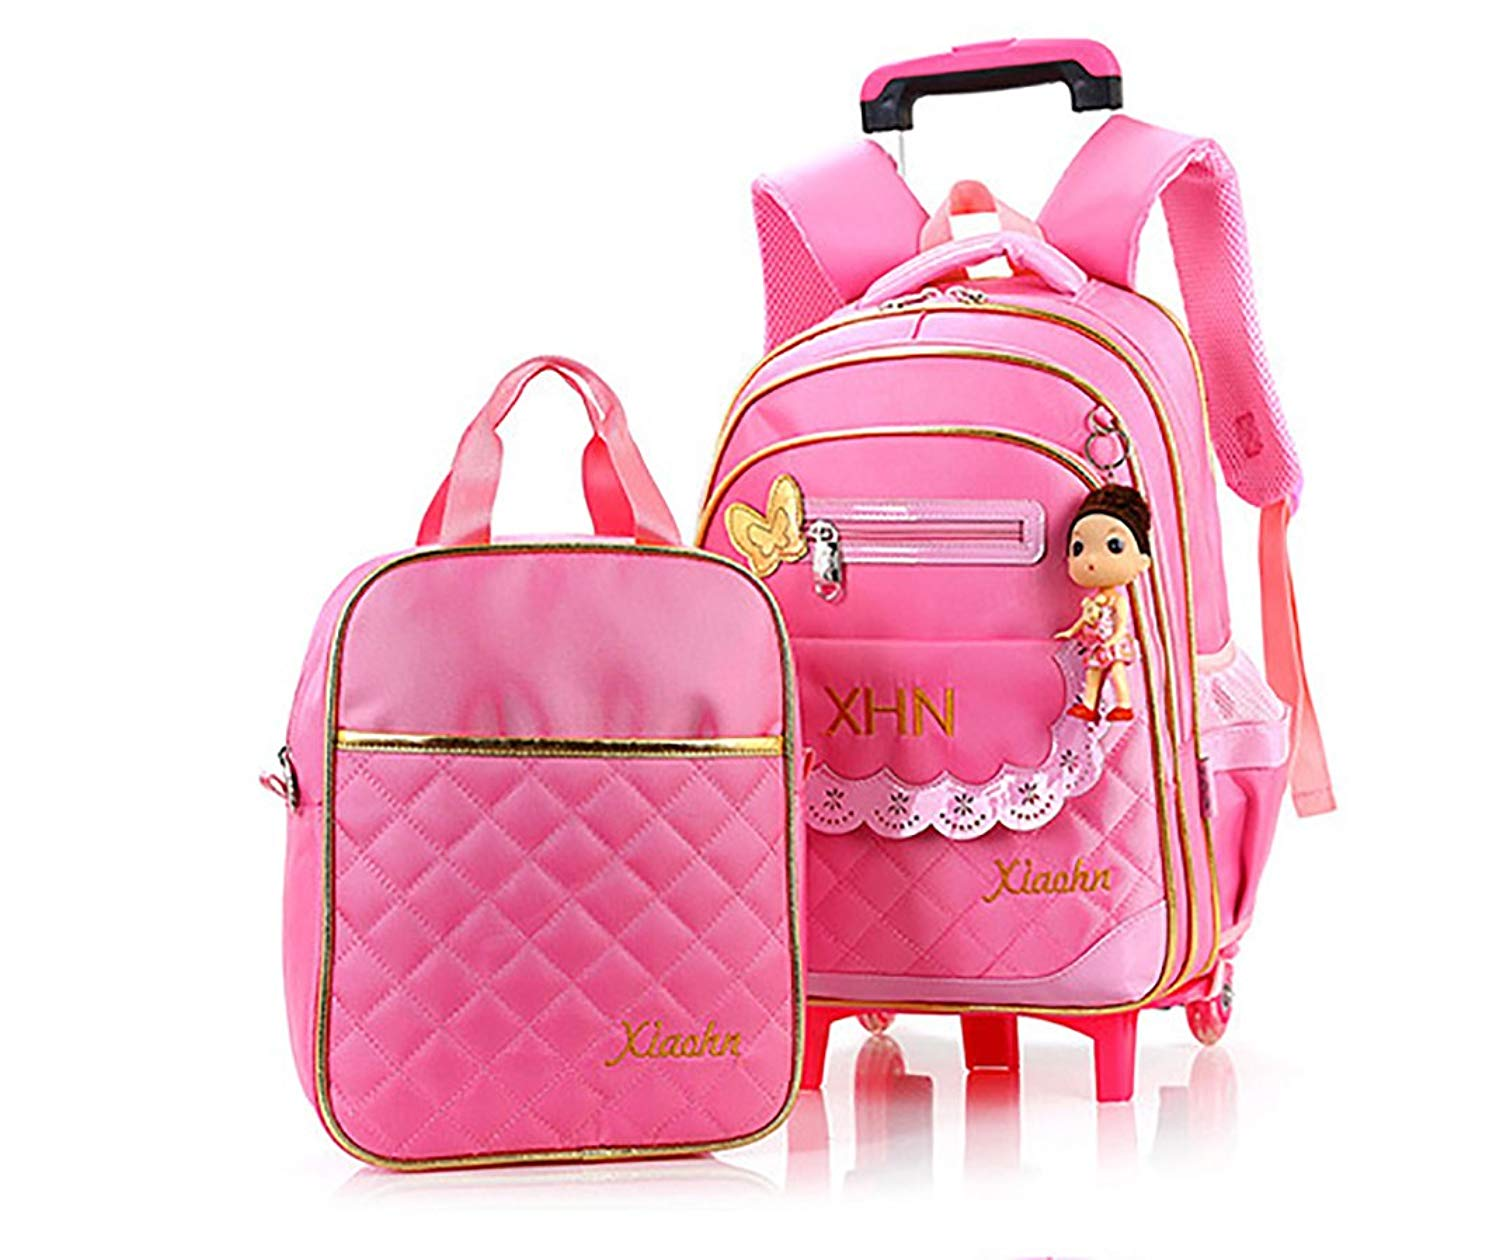 08a4ff3d6459 Cheap Handbag Trolley Bags, find Handbag Trolley Bags deals on line ...